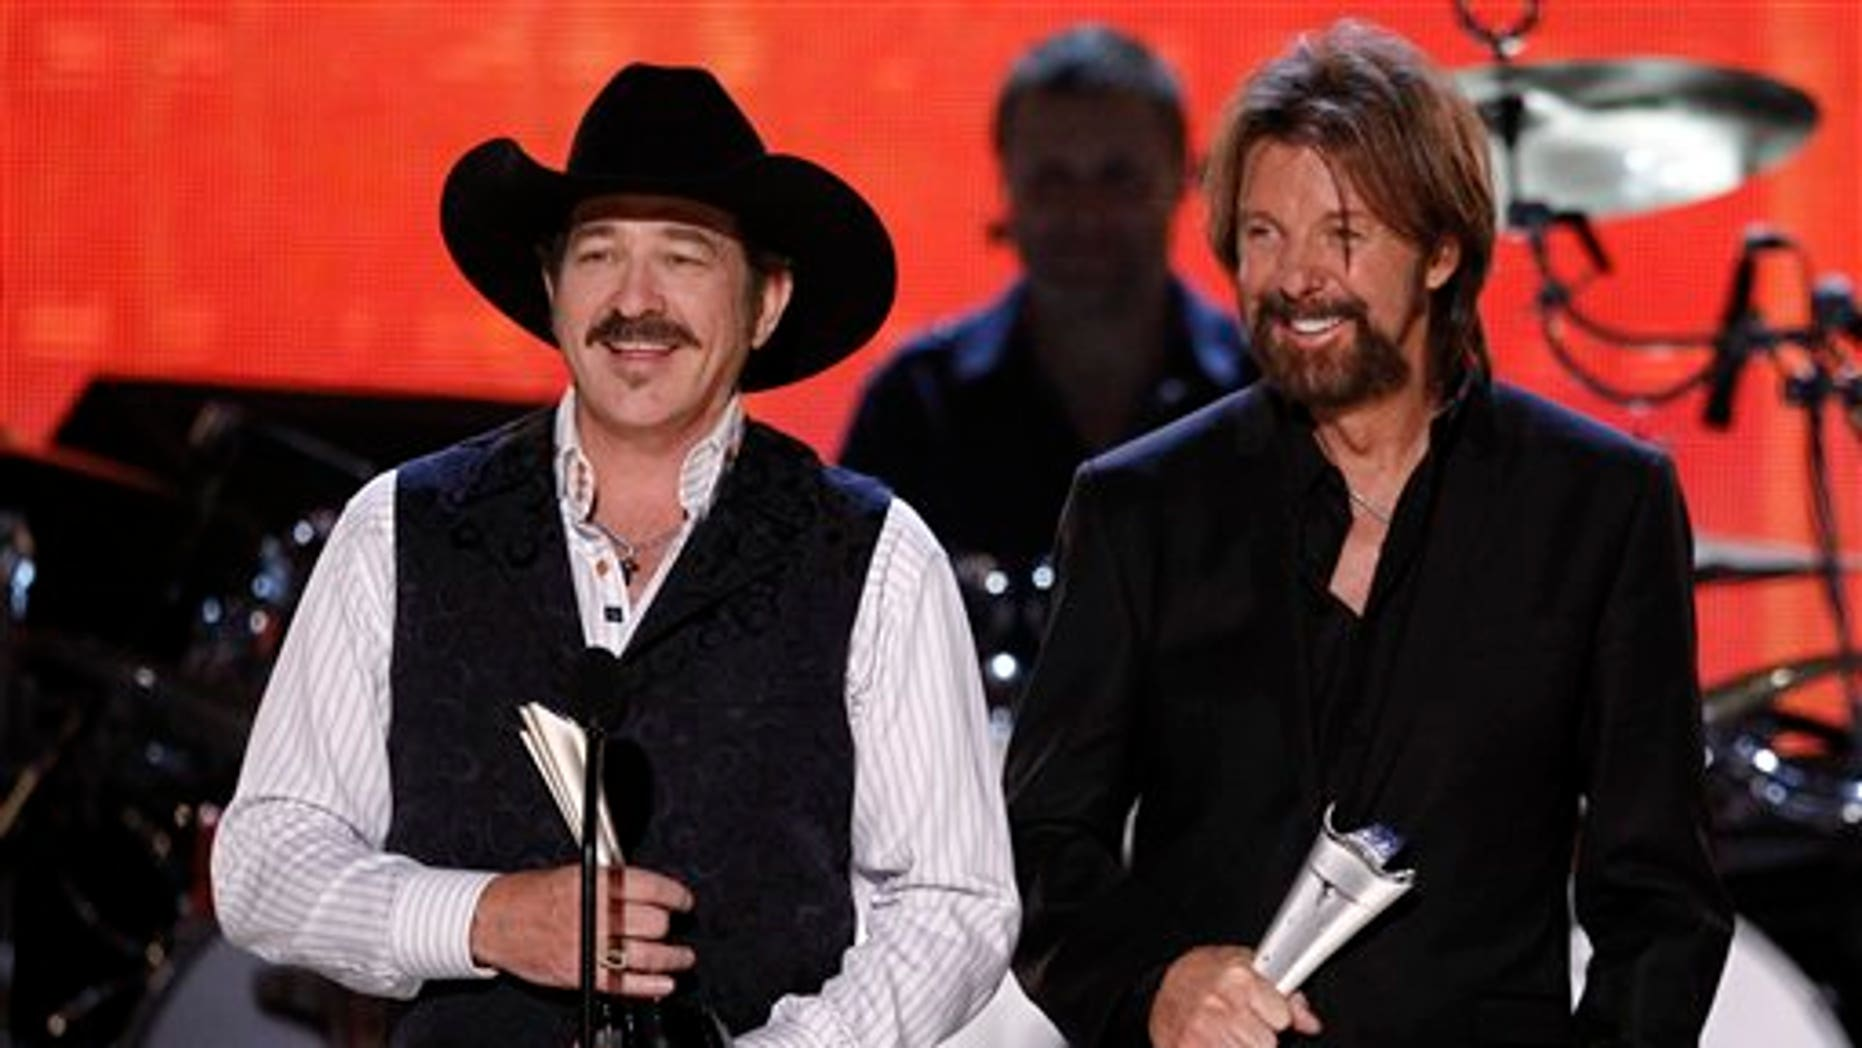 """In a April 19, 2010 file photo, Kix Brooks, left, and Ronnie Dunn accept the ACM Milestone Award during """"The Last Rodeo"""" tribute concert, in Las Vegas. (AP)"""